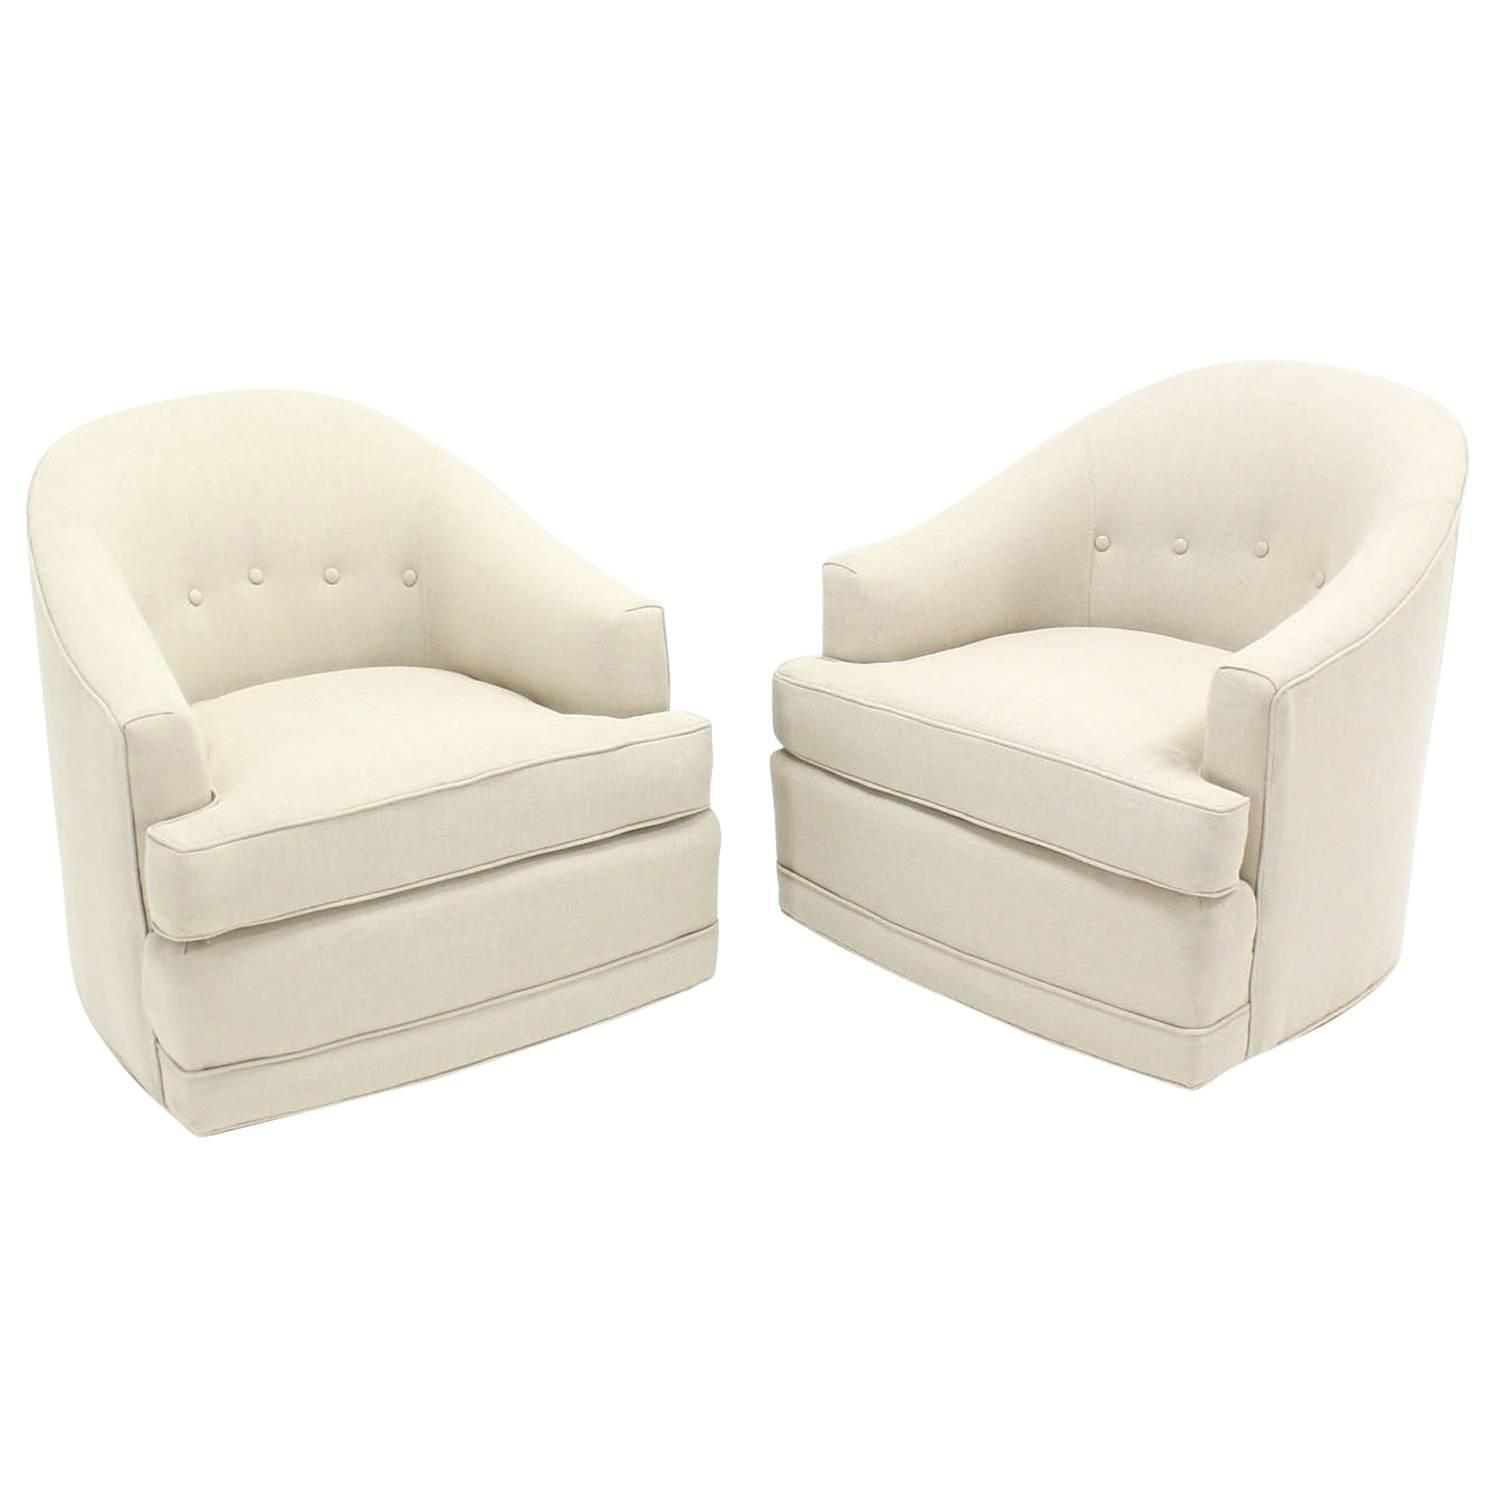 Pair of Barrel Back Swivel Chairs For Sale at 1stdibs